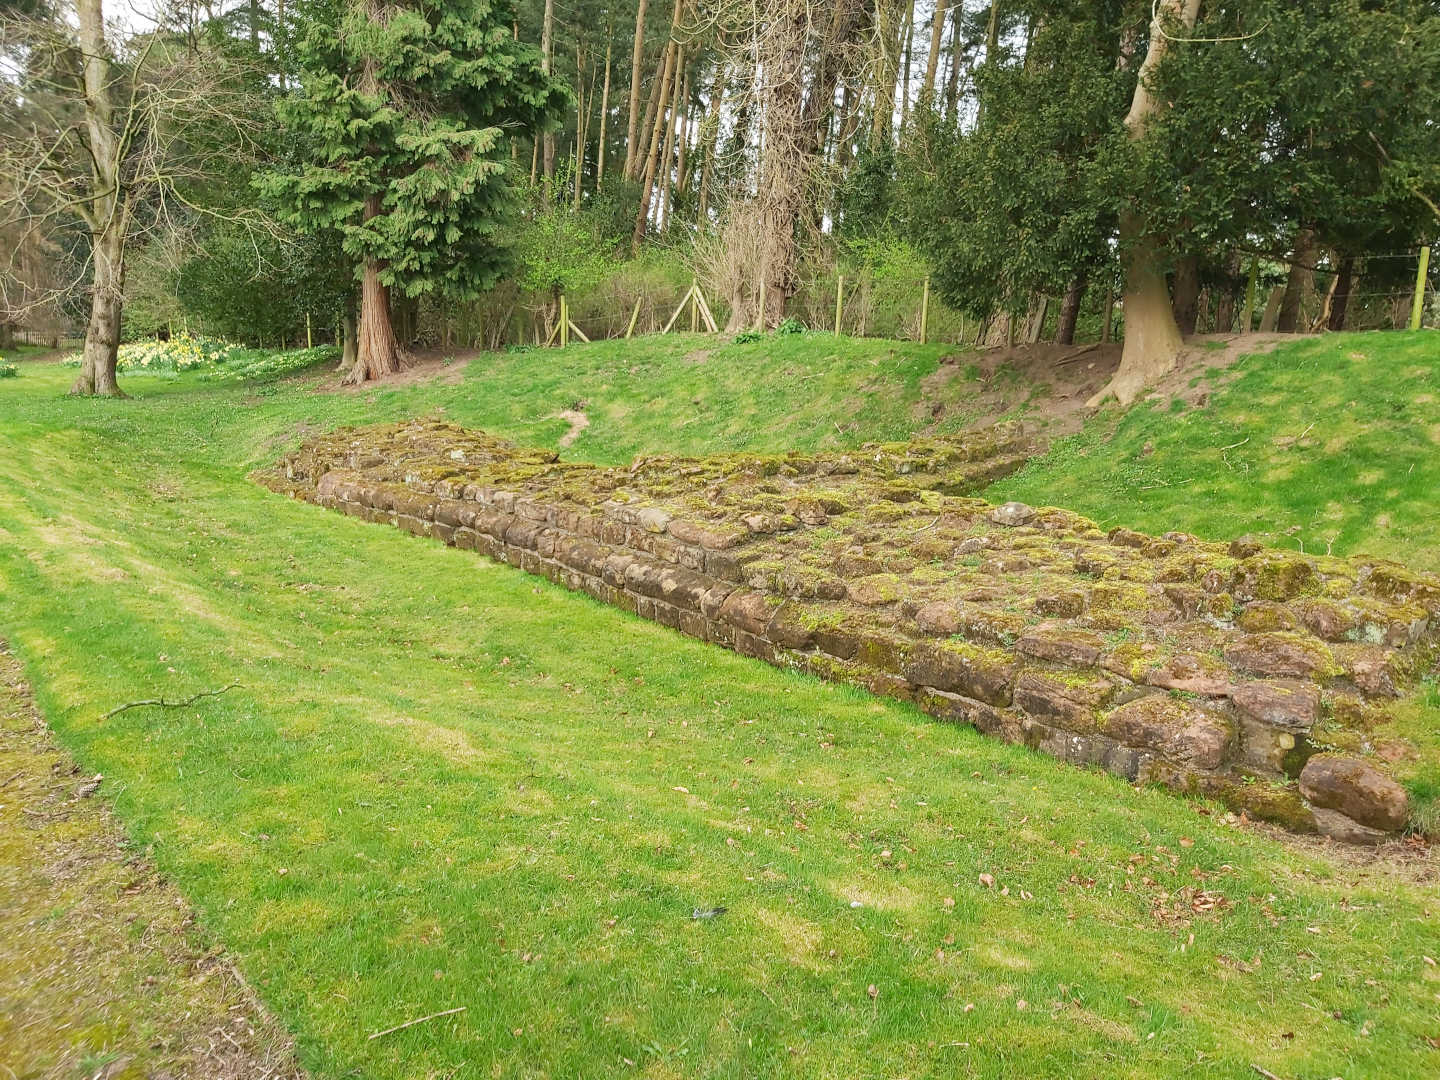 A colour photo showing the base of a stone wall bordered by grass banks - there are three courses of stonework making up the remains of this wall, and these are covered in low level weeds and moss - in the background there is a dense area of mature trees